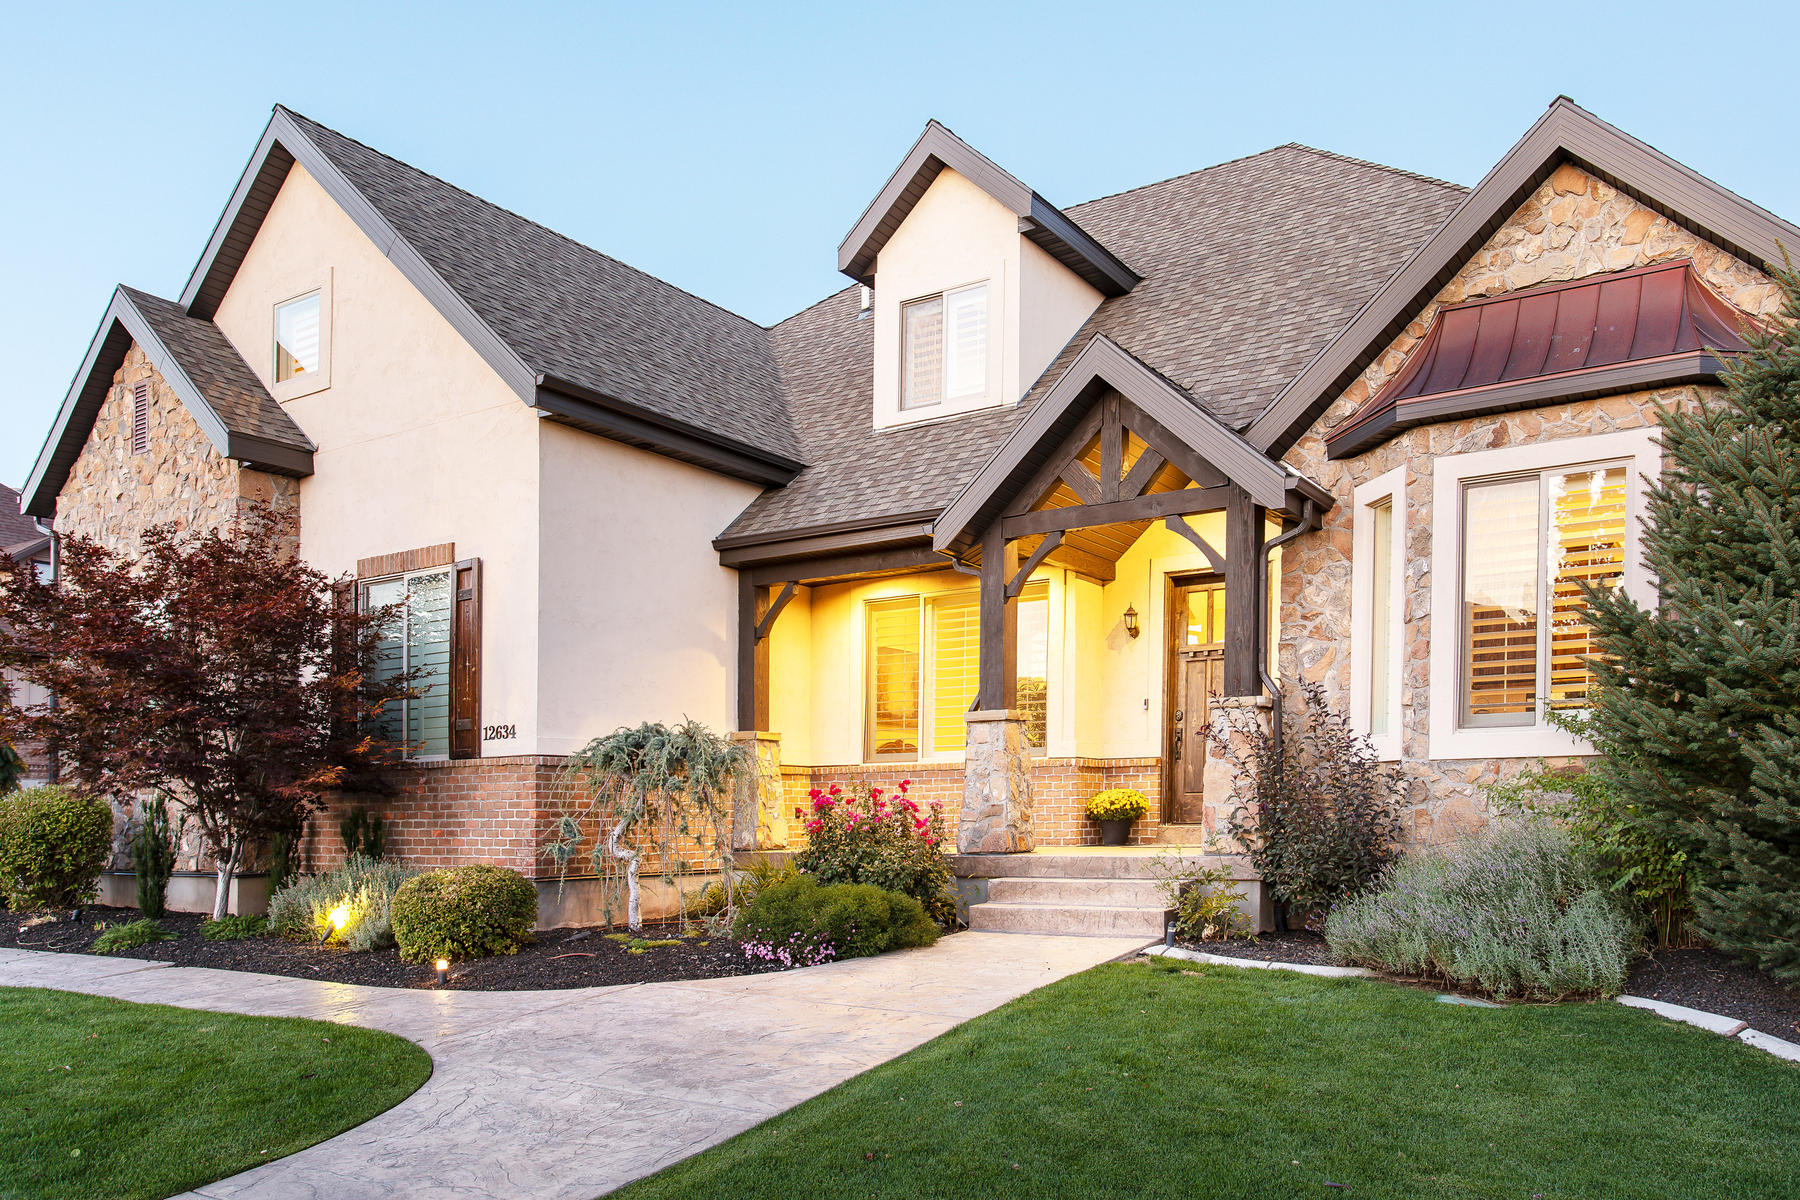 Single Family Homes for Sale at Stunning Custom Home in Highland 12634 N Ponce De Leon Drive, Highland, Utah 84003 United States